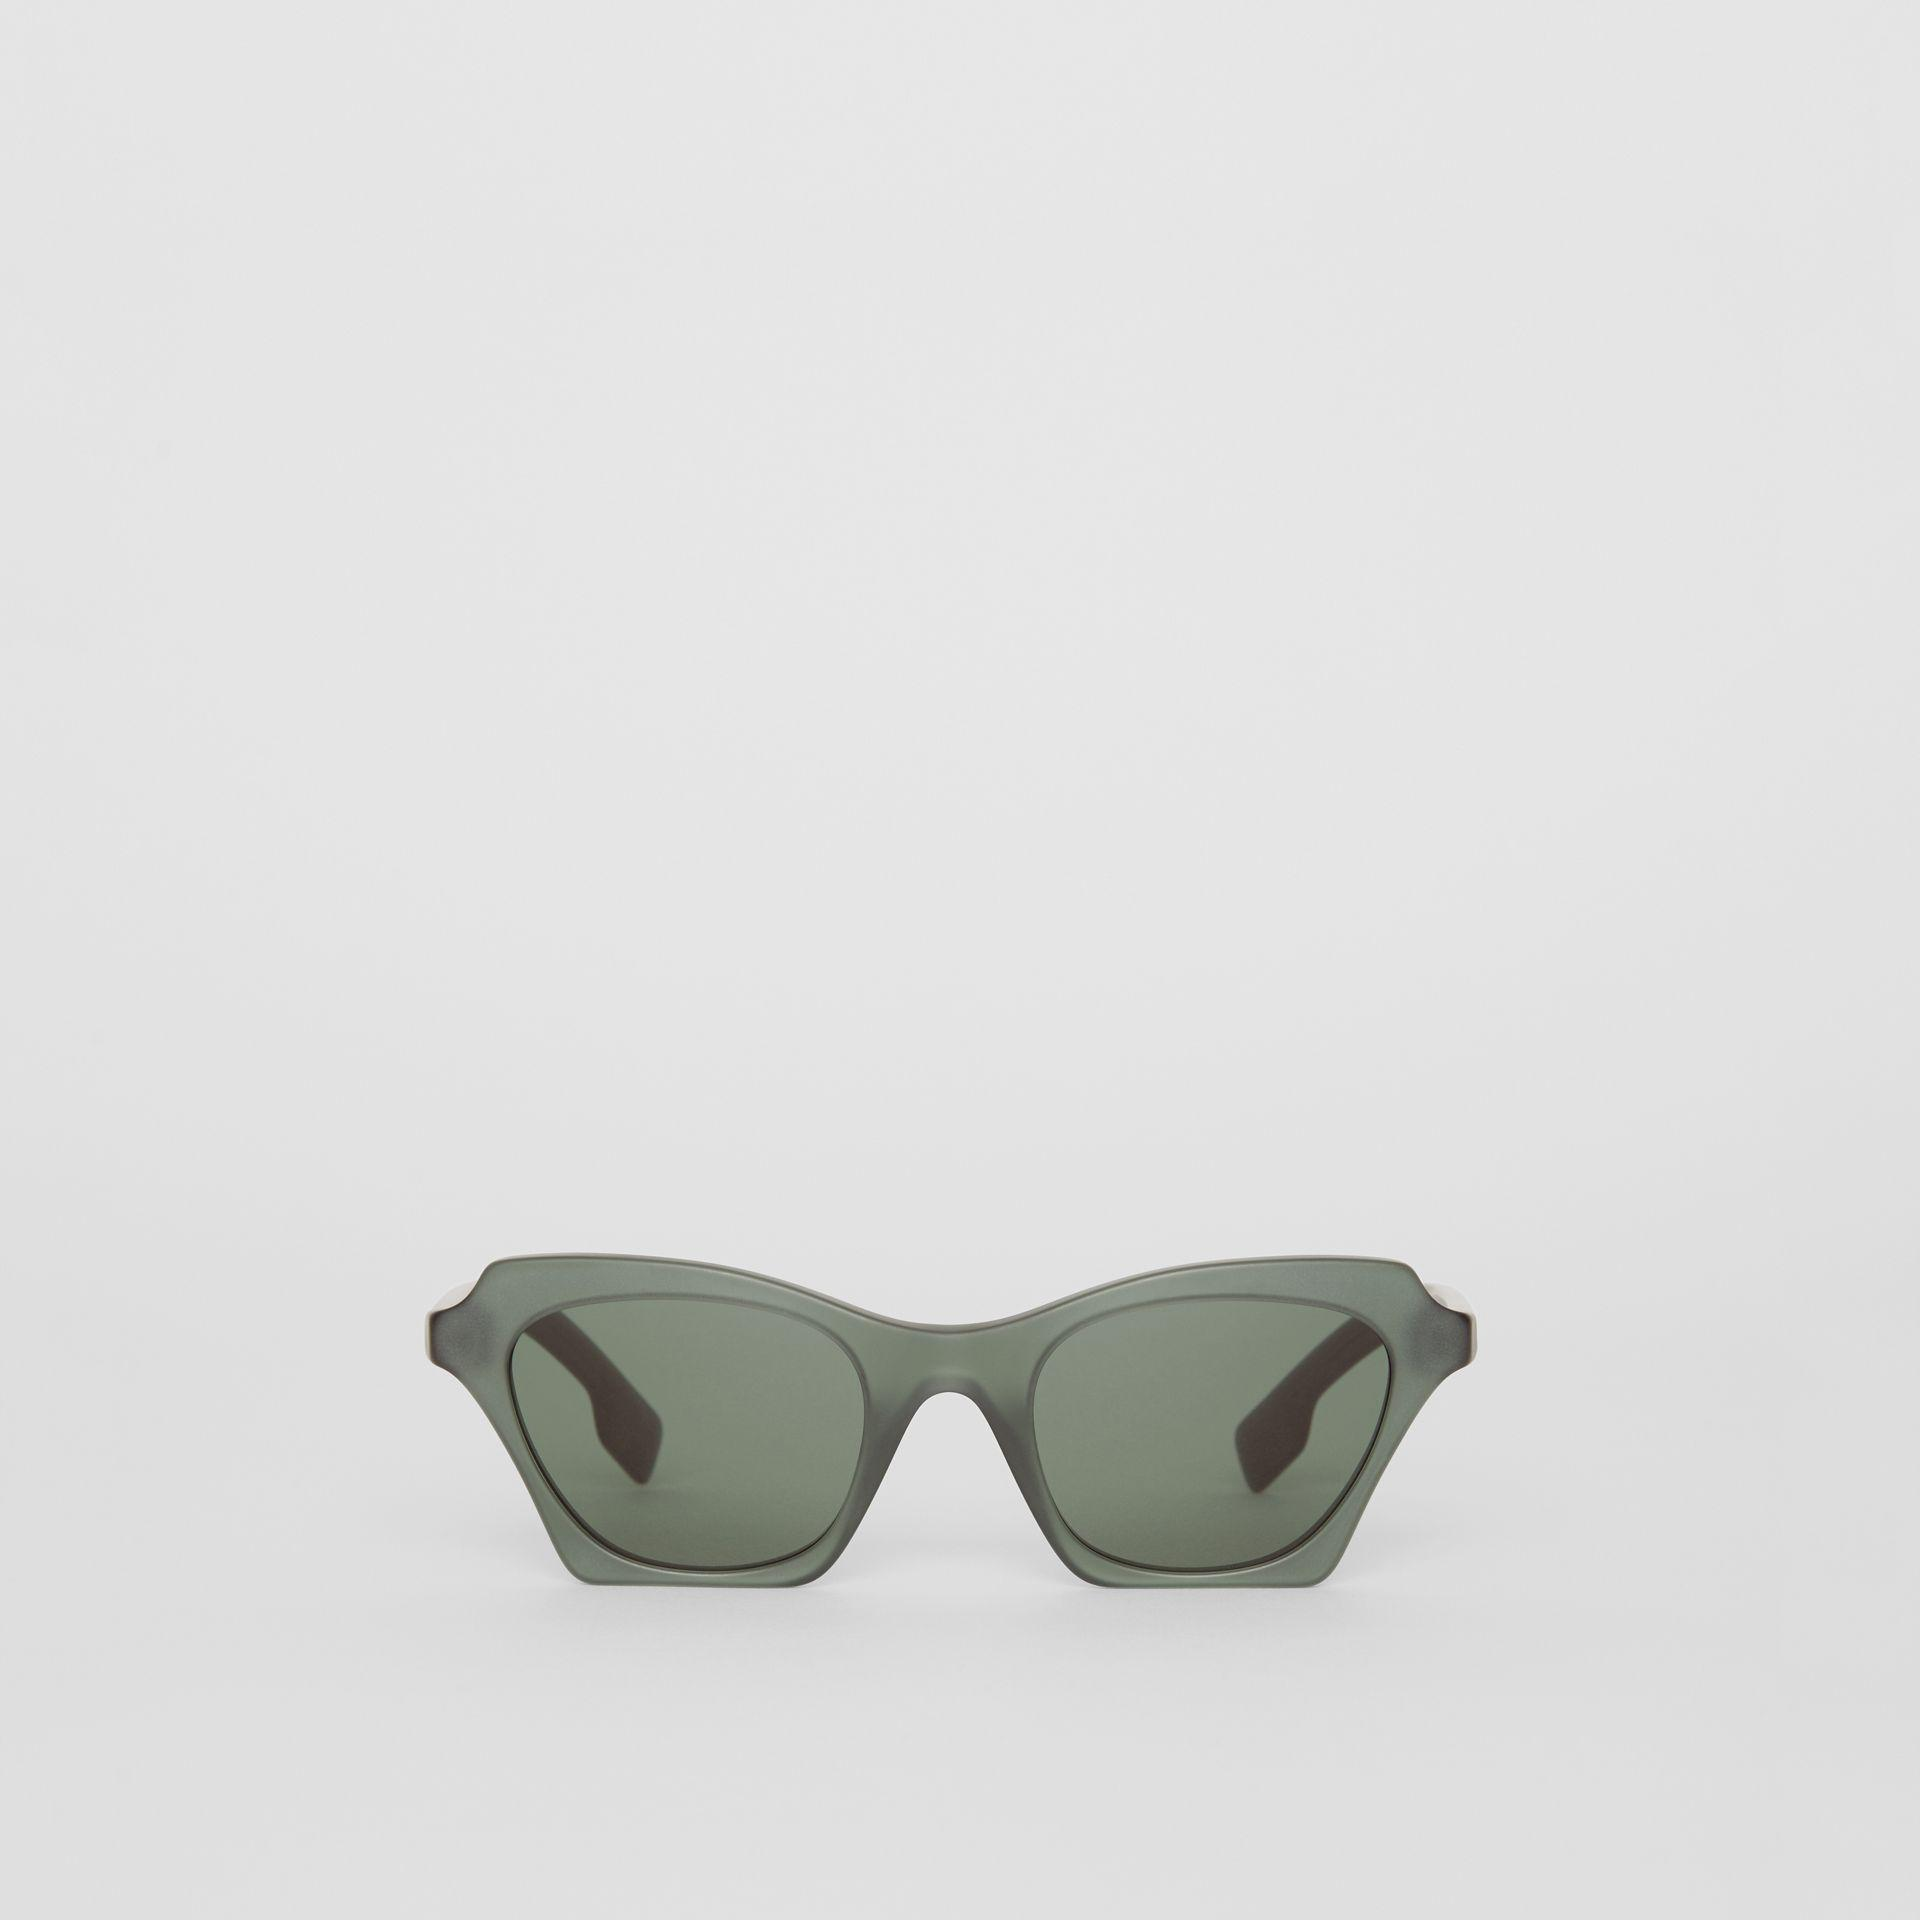 6a5624645b91 Lyst - Burberry Butterfly Frame Sunglasses in Green